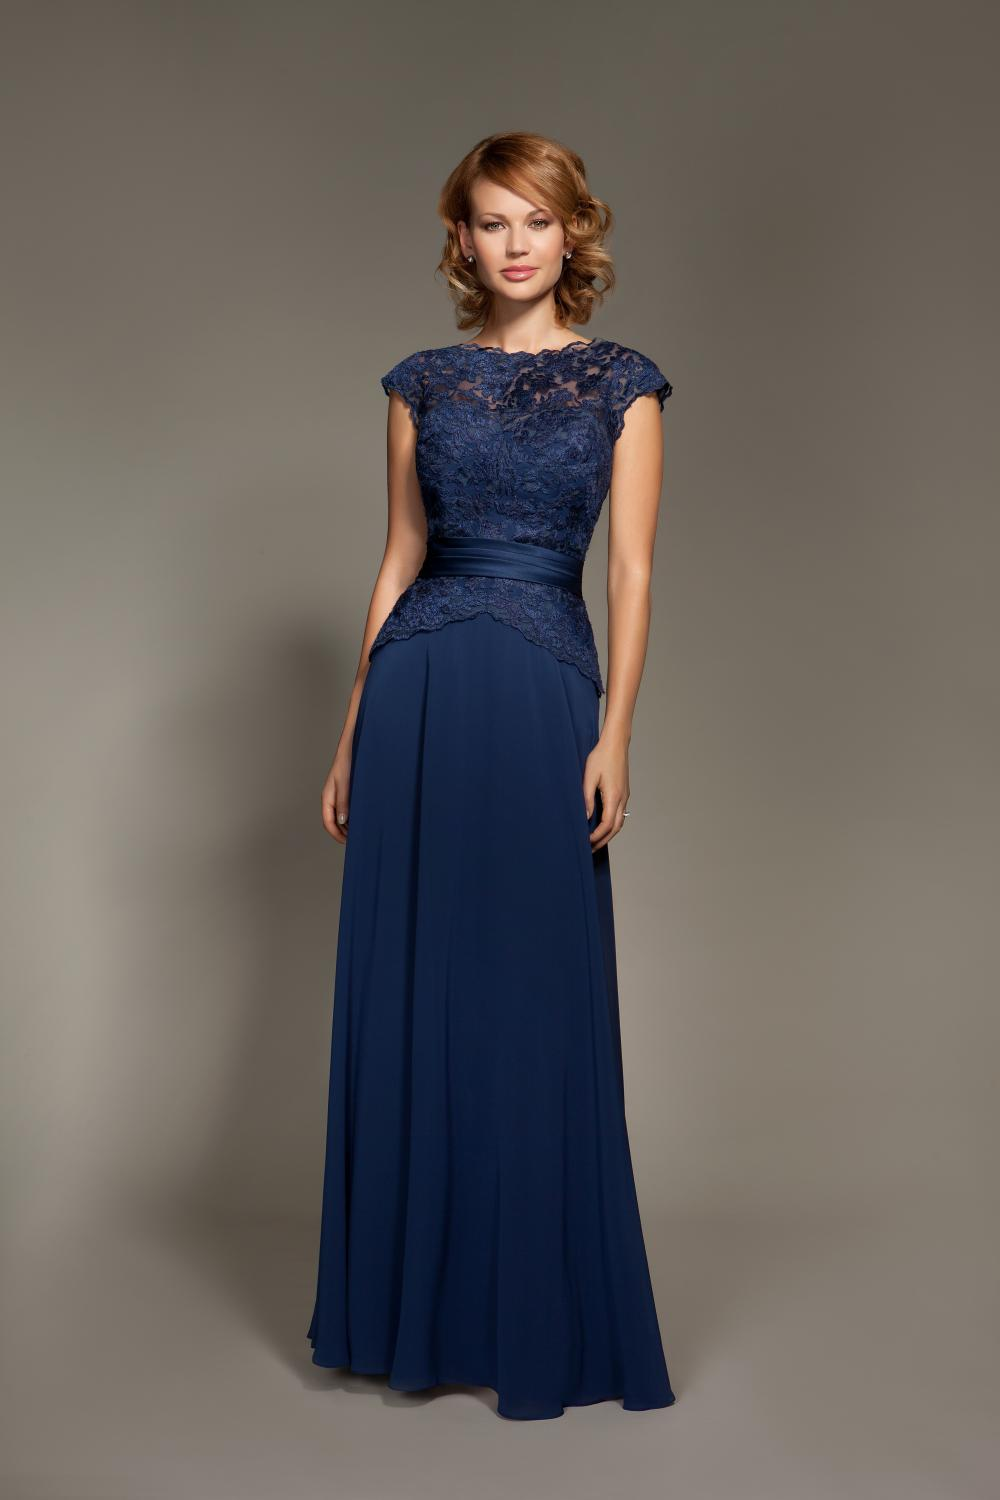 Cheap 2014 sleeveless backless floor length mother of the for Mothers dresses for weddings